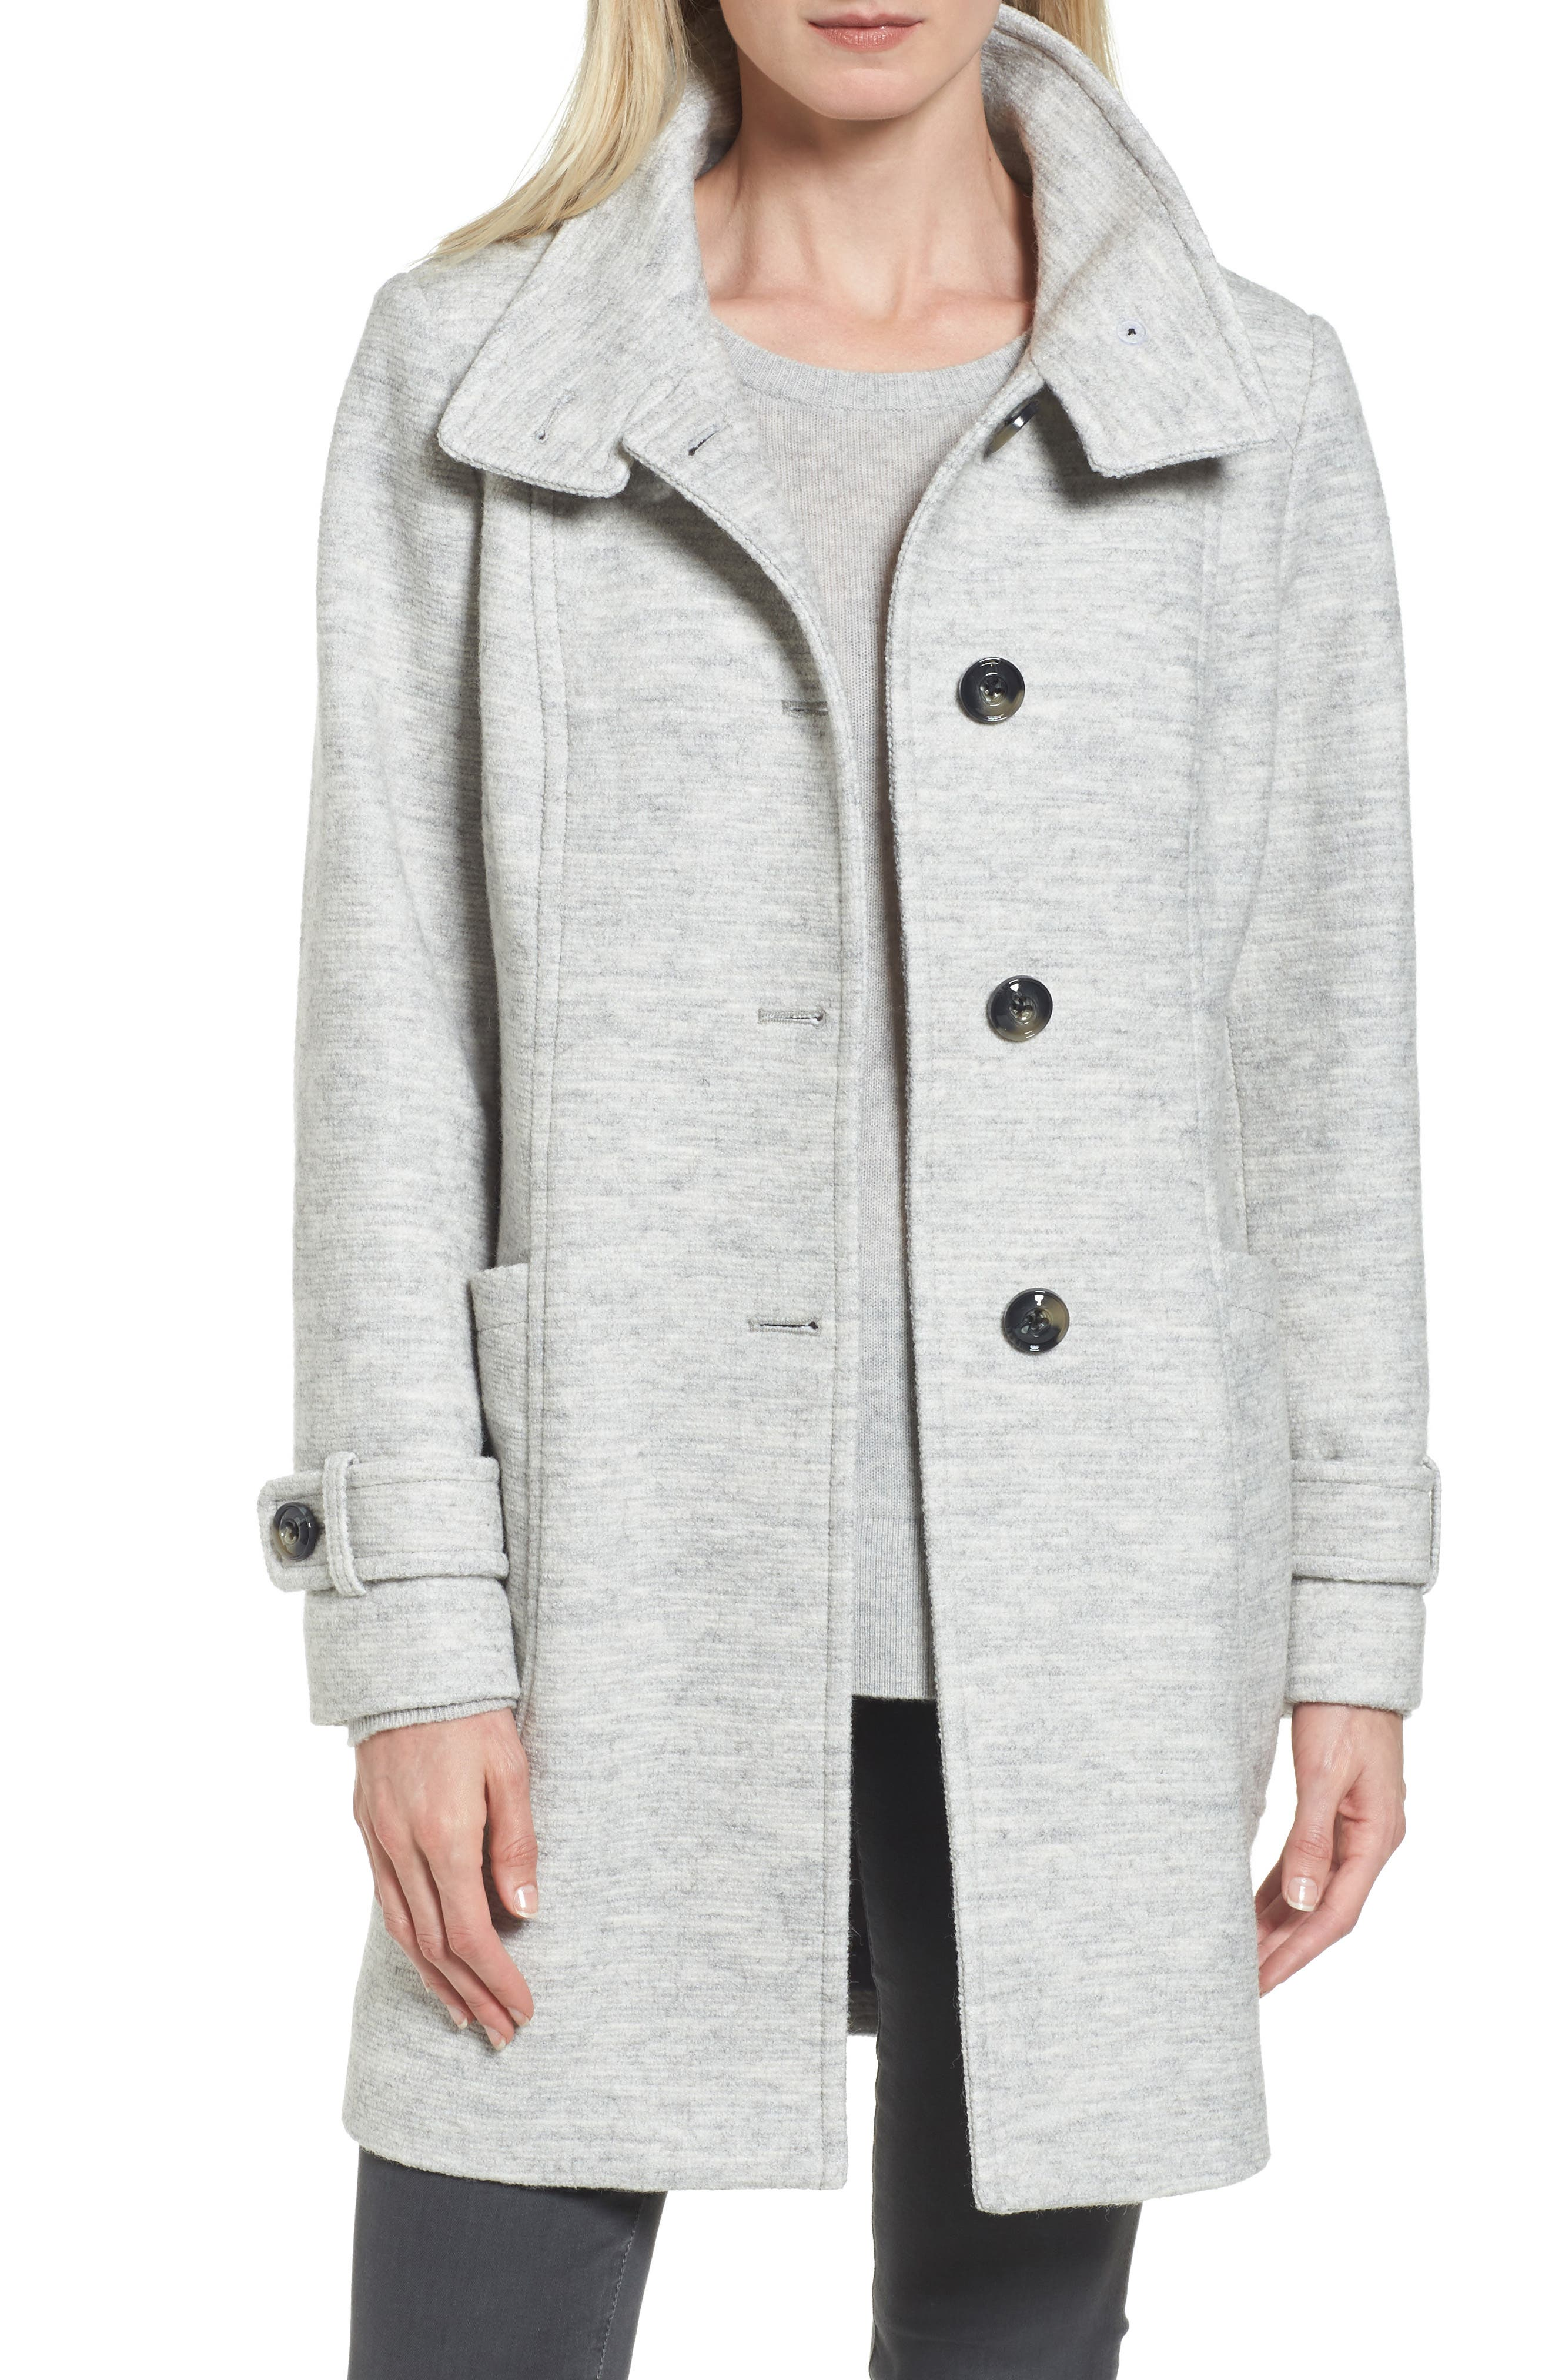 Stand Collar Coat,                         Main,                         color, Pale Grey